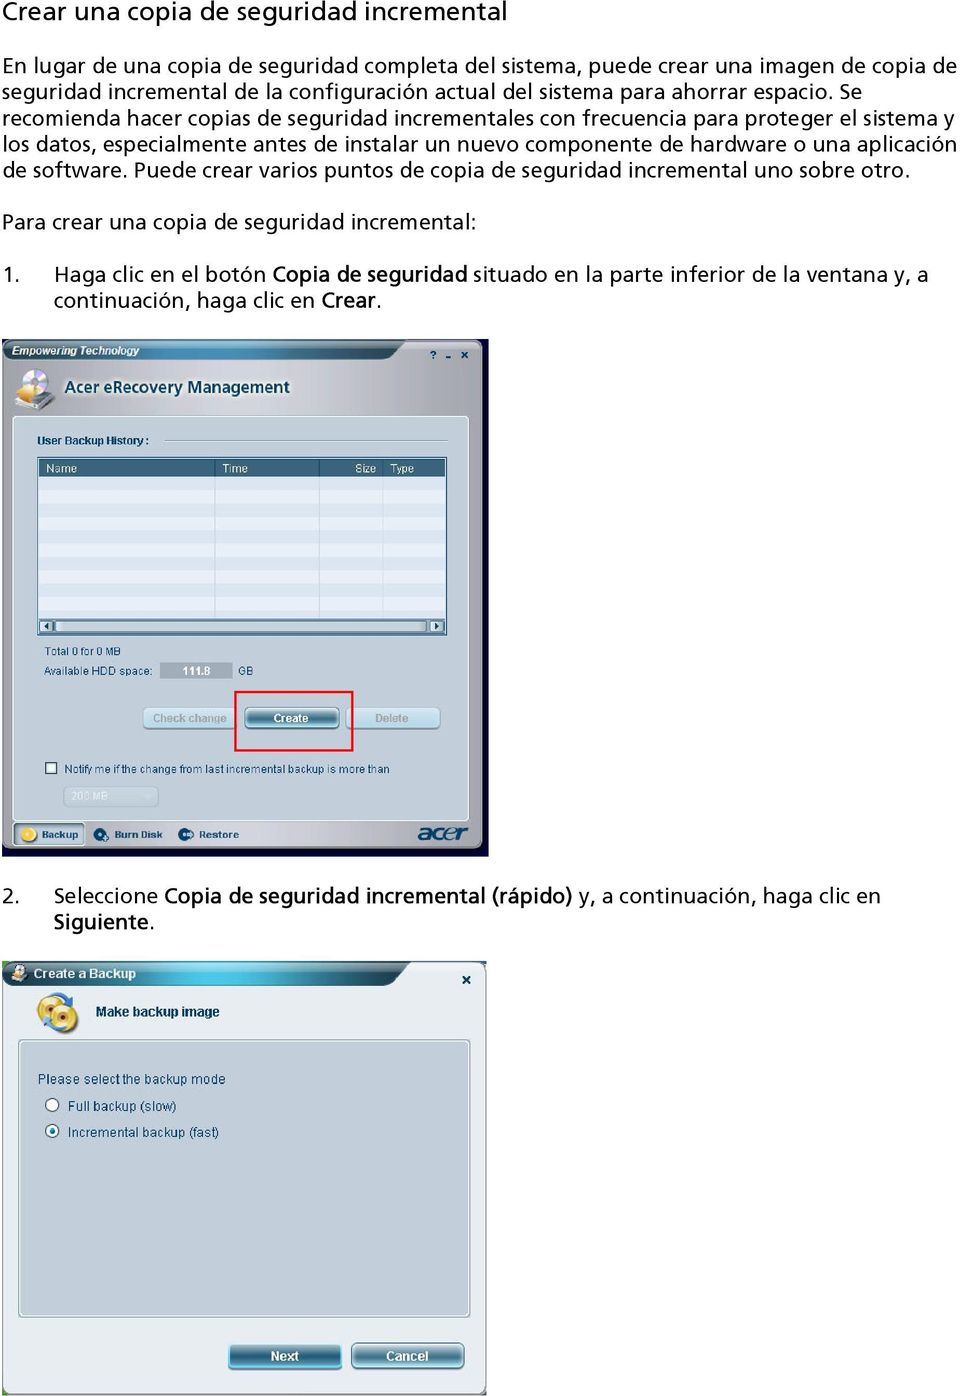 acer erecovery management download 32 bit